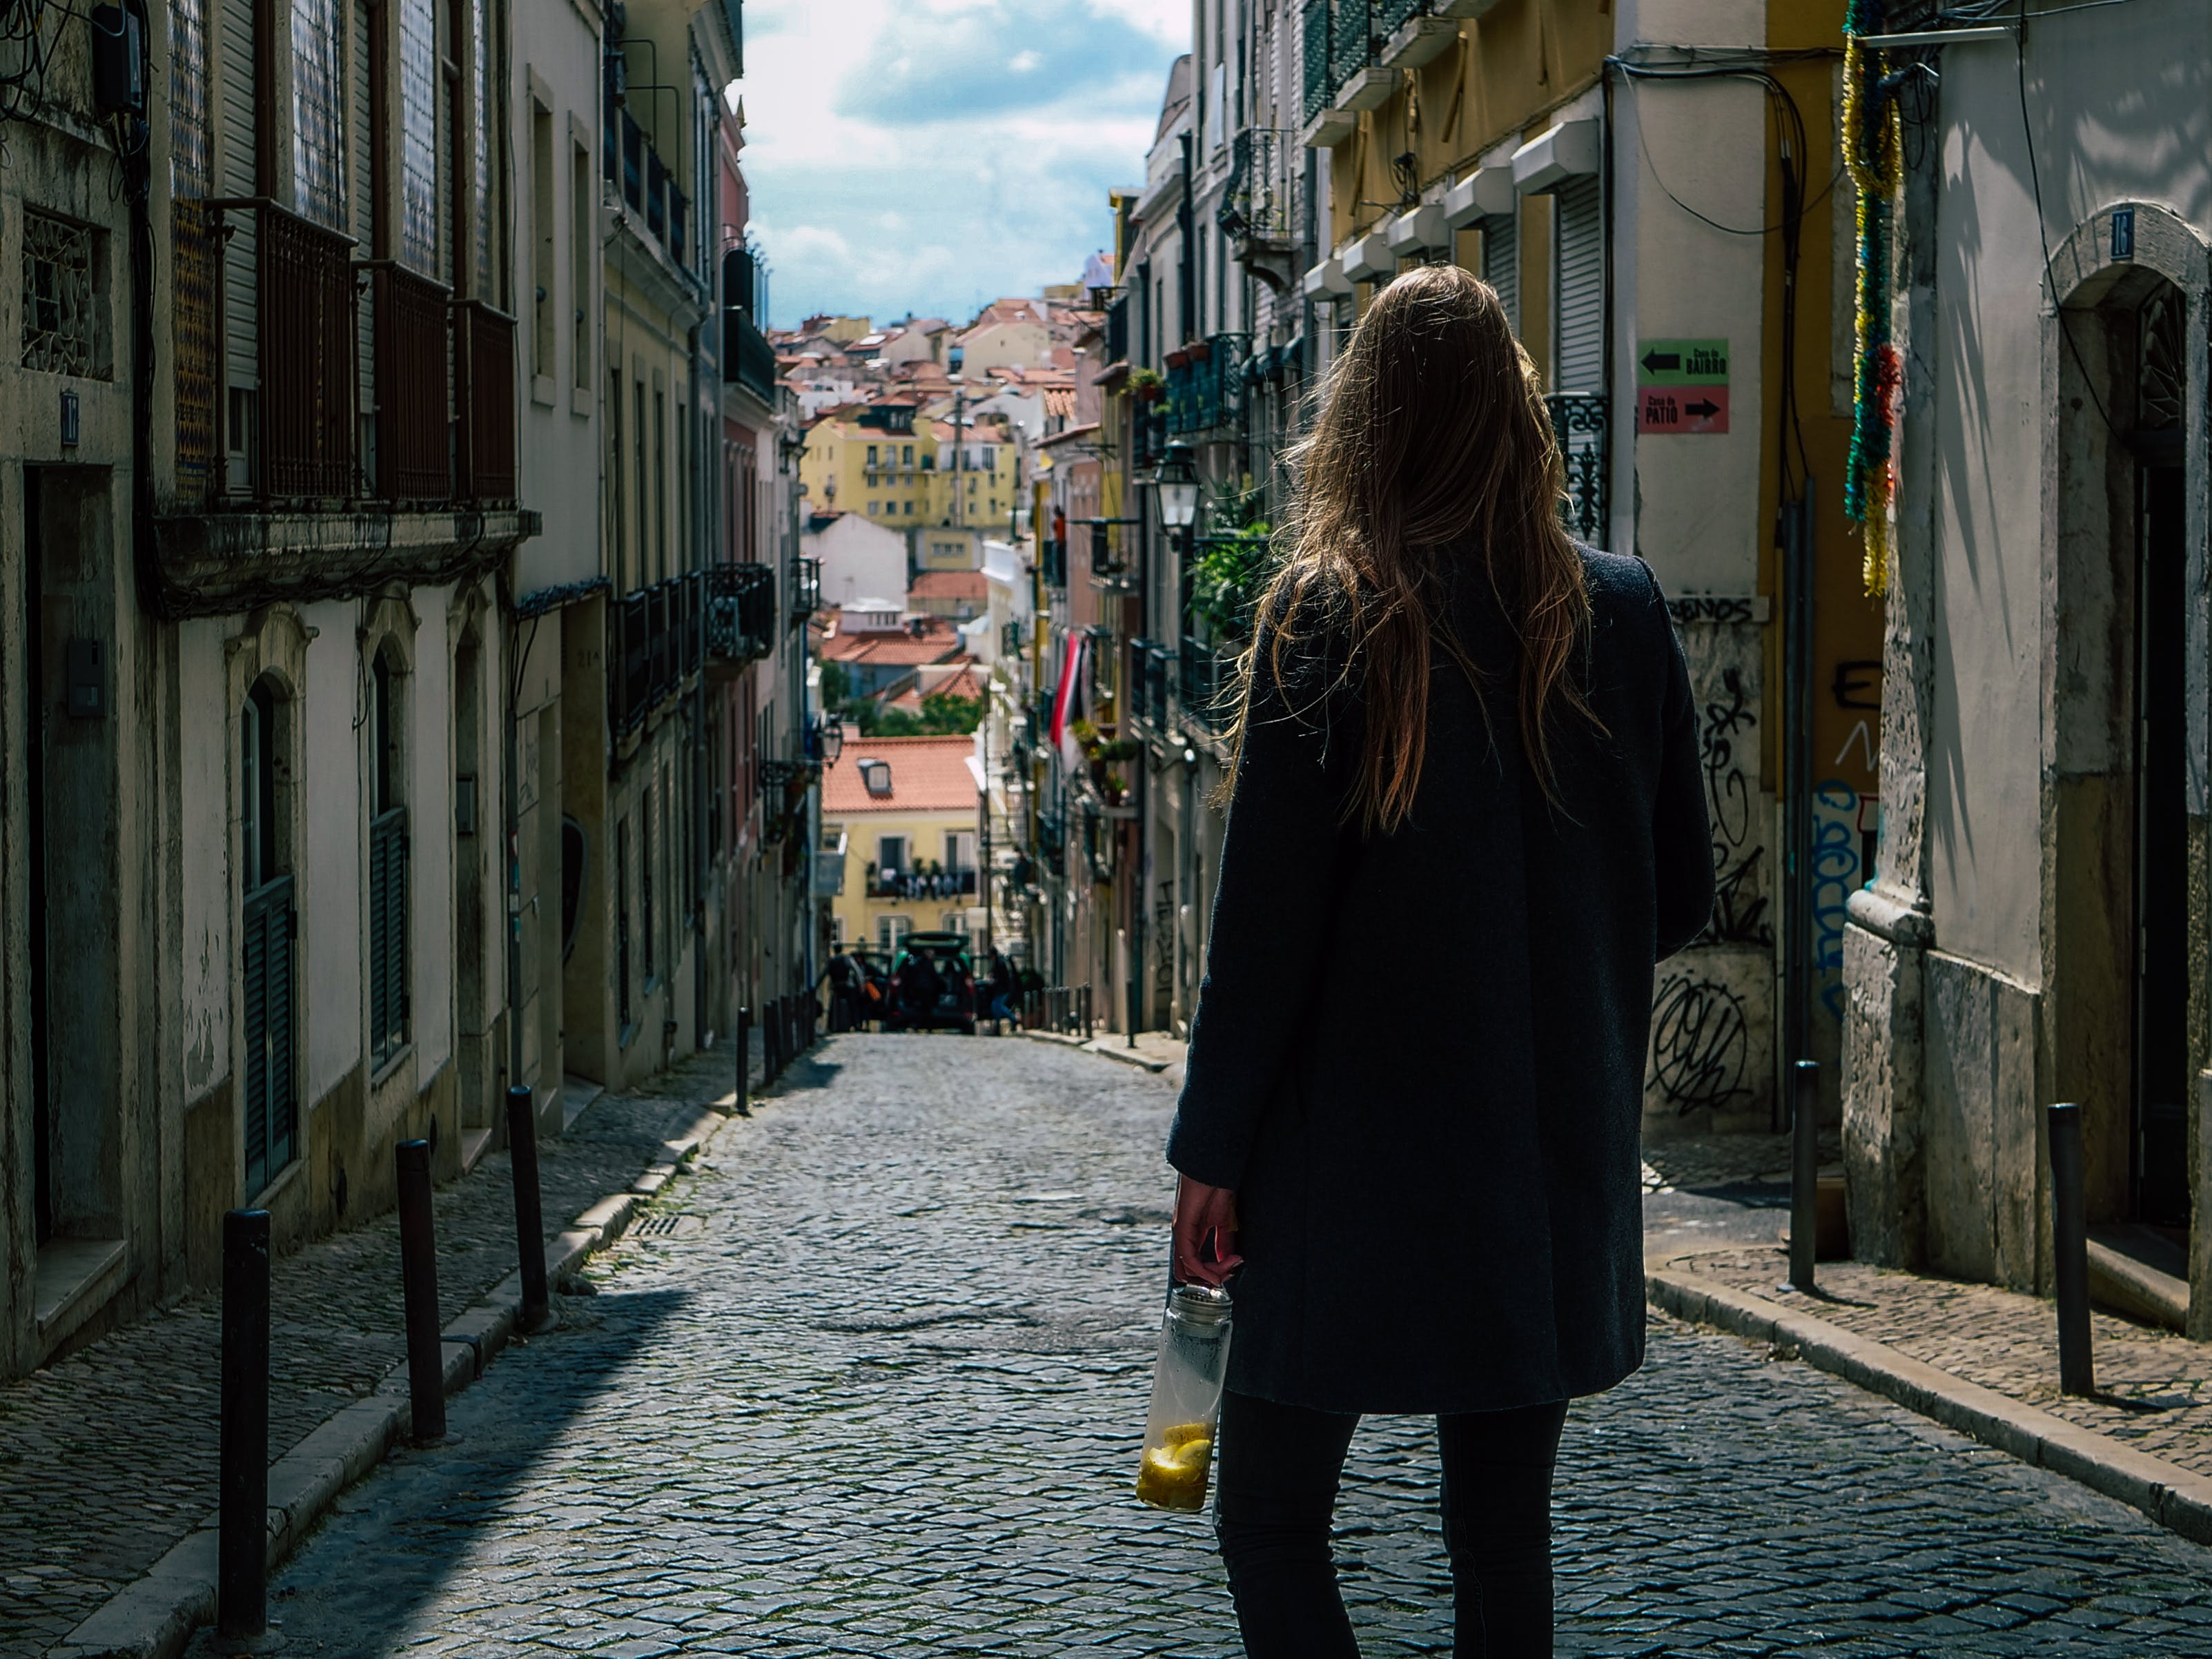 Woman in Black Coat Standing in Pathway Between Commercial Buildings